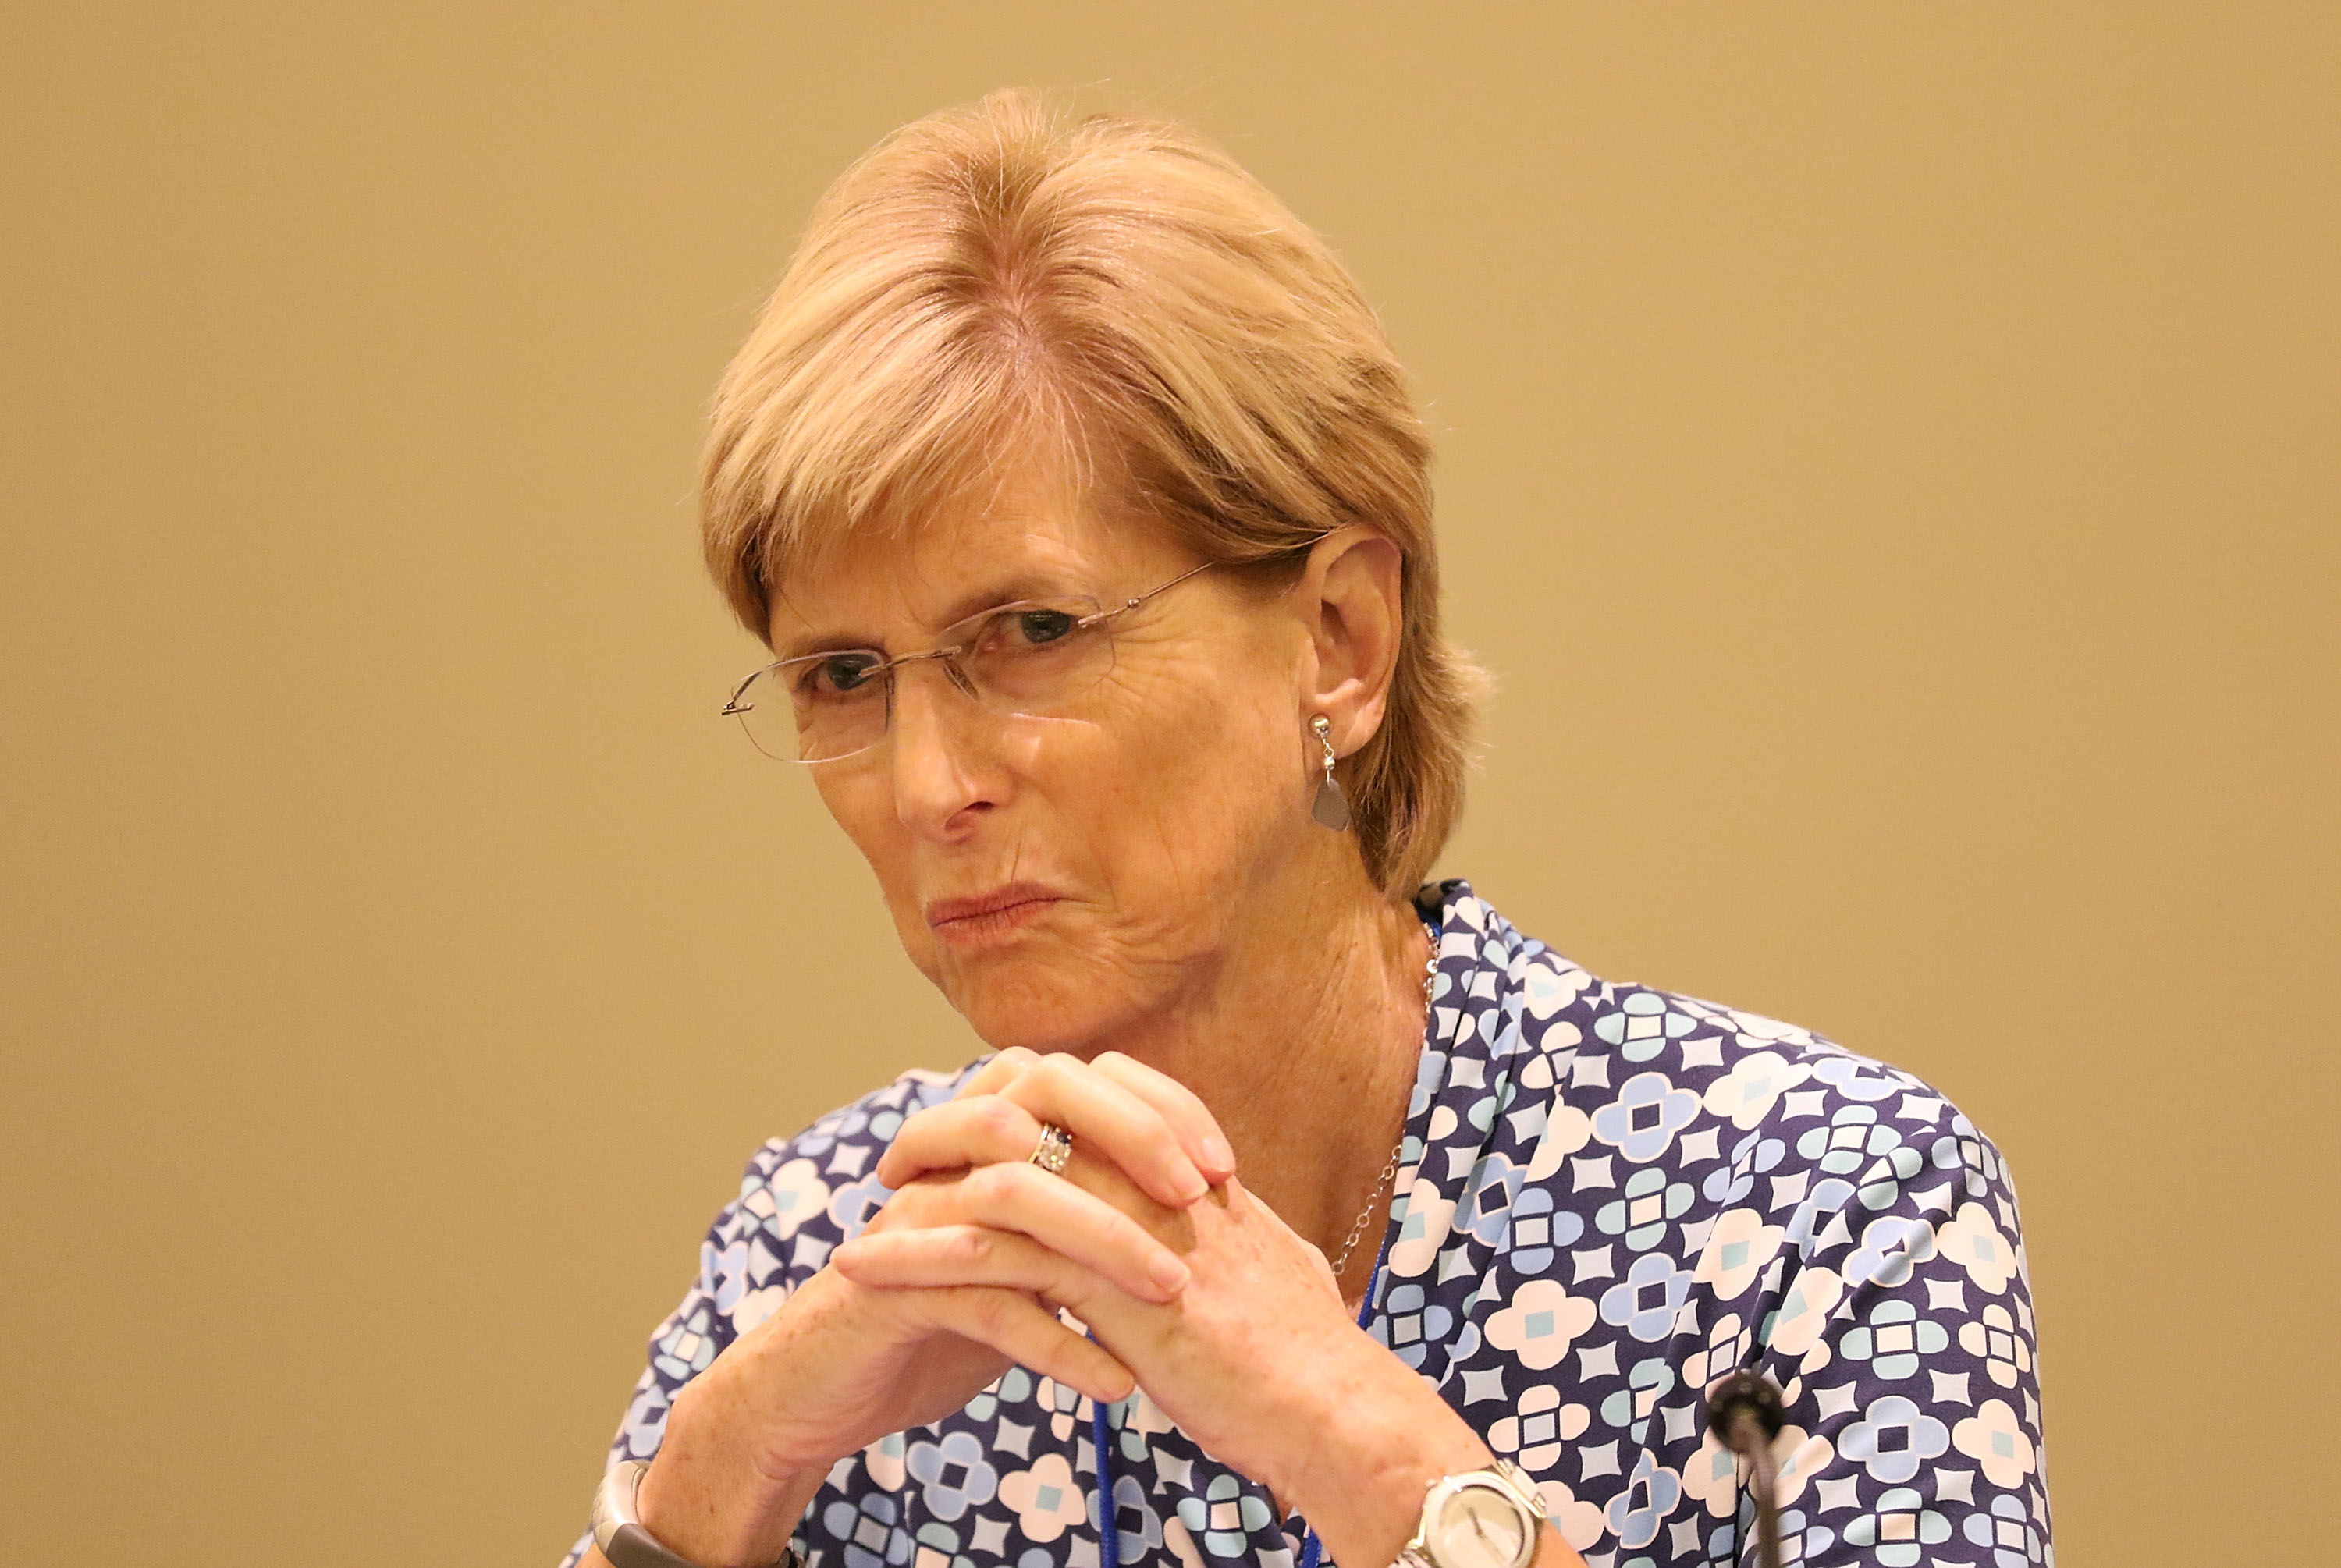 Christine Todd Whitman attends Making Strides: Advancing Women's Leadership - Opening Reception at Vizcaya Museum & Gardens on Nov. 17, 2015 in Miami, Florida.